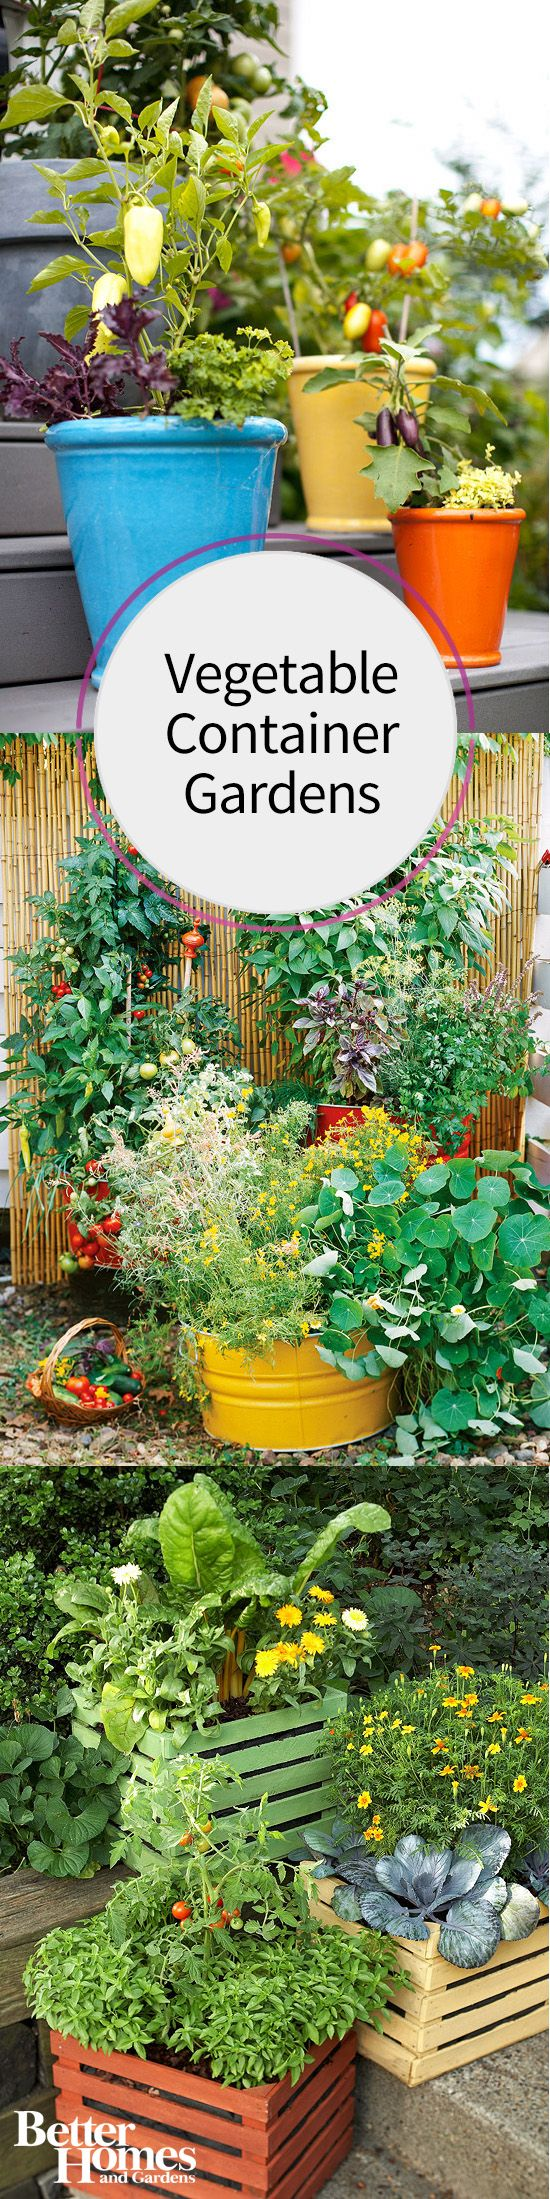 Ten Top Tips For Small Shady Urban Gardens: Fresh Ideas For Growing Vegetables In Containers